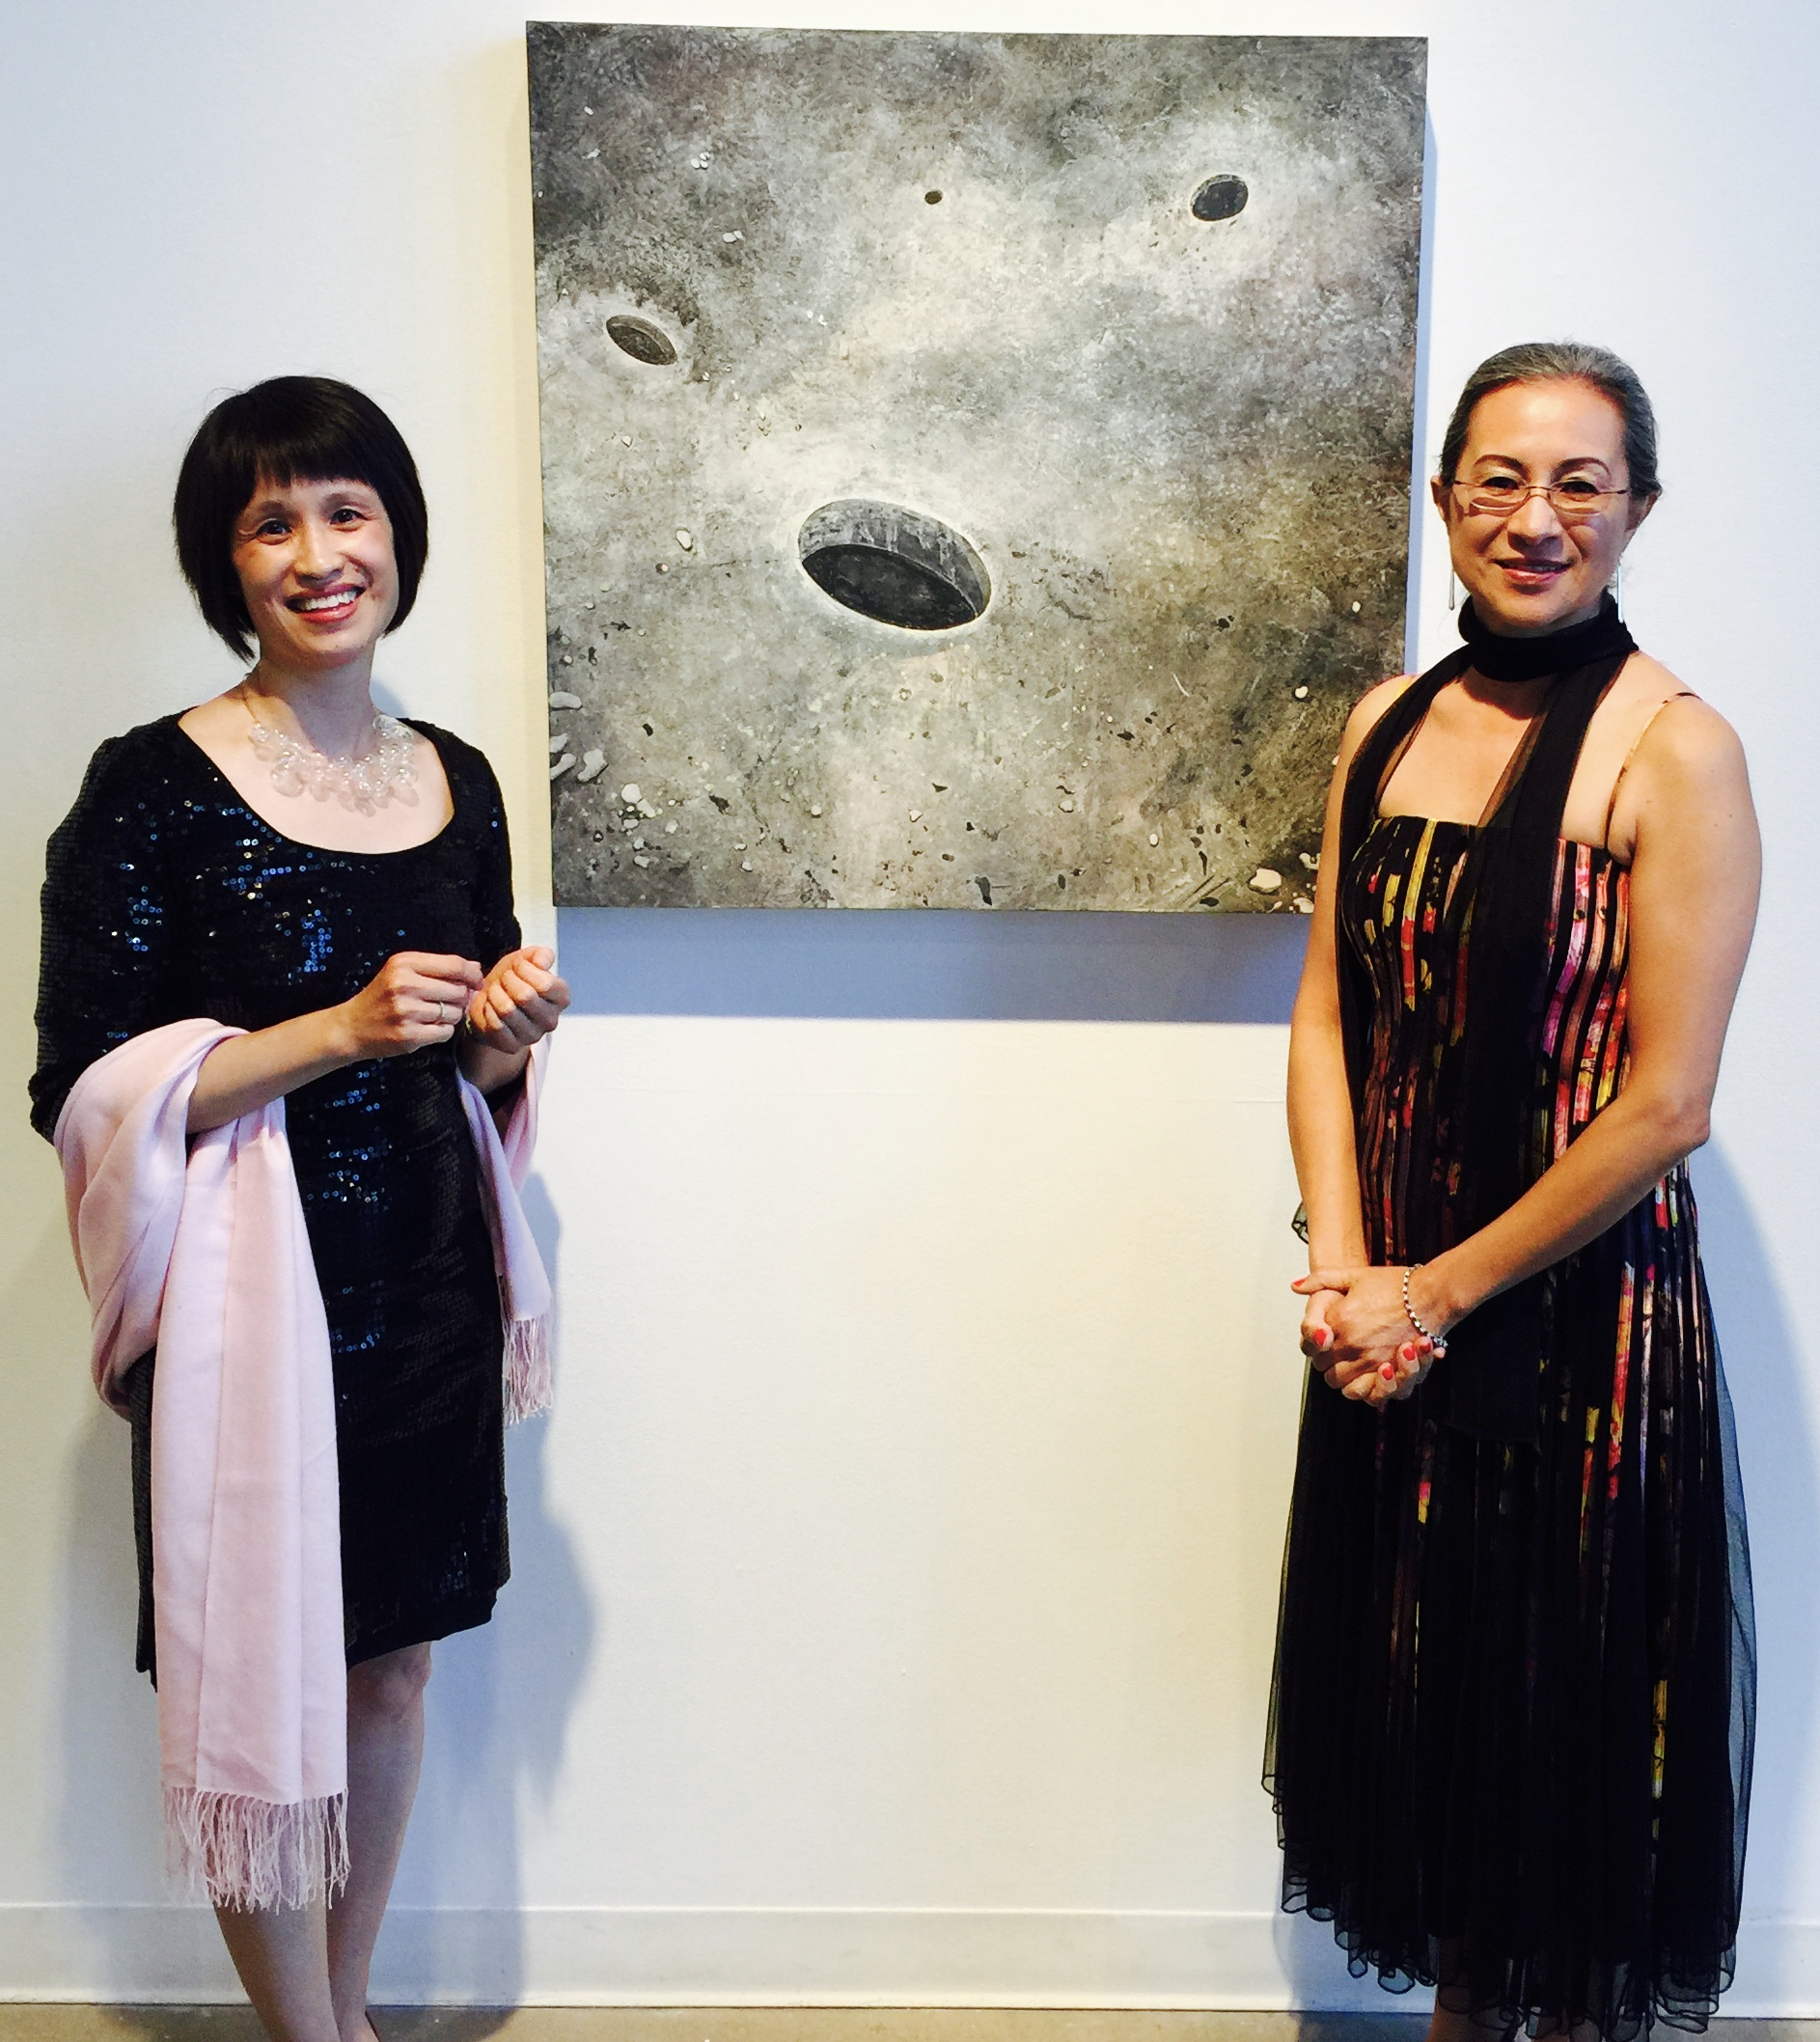 Jing Yeng Lim and Dolores Arce-Kaptain admiring Visual Arts faculty member Lanny DeVuono's painting